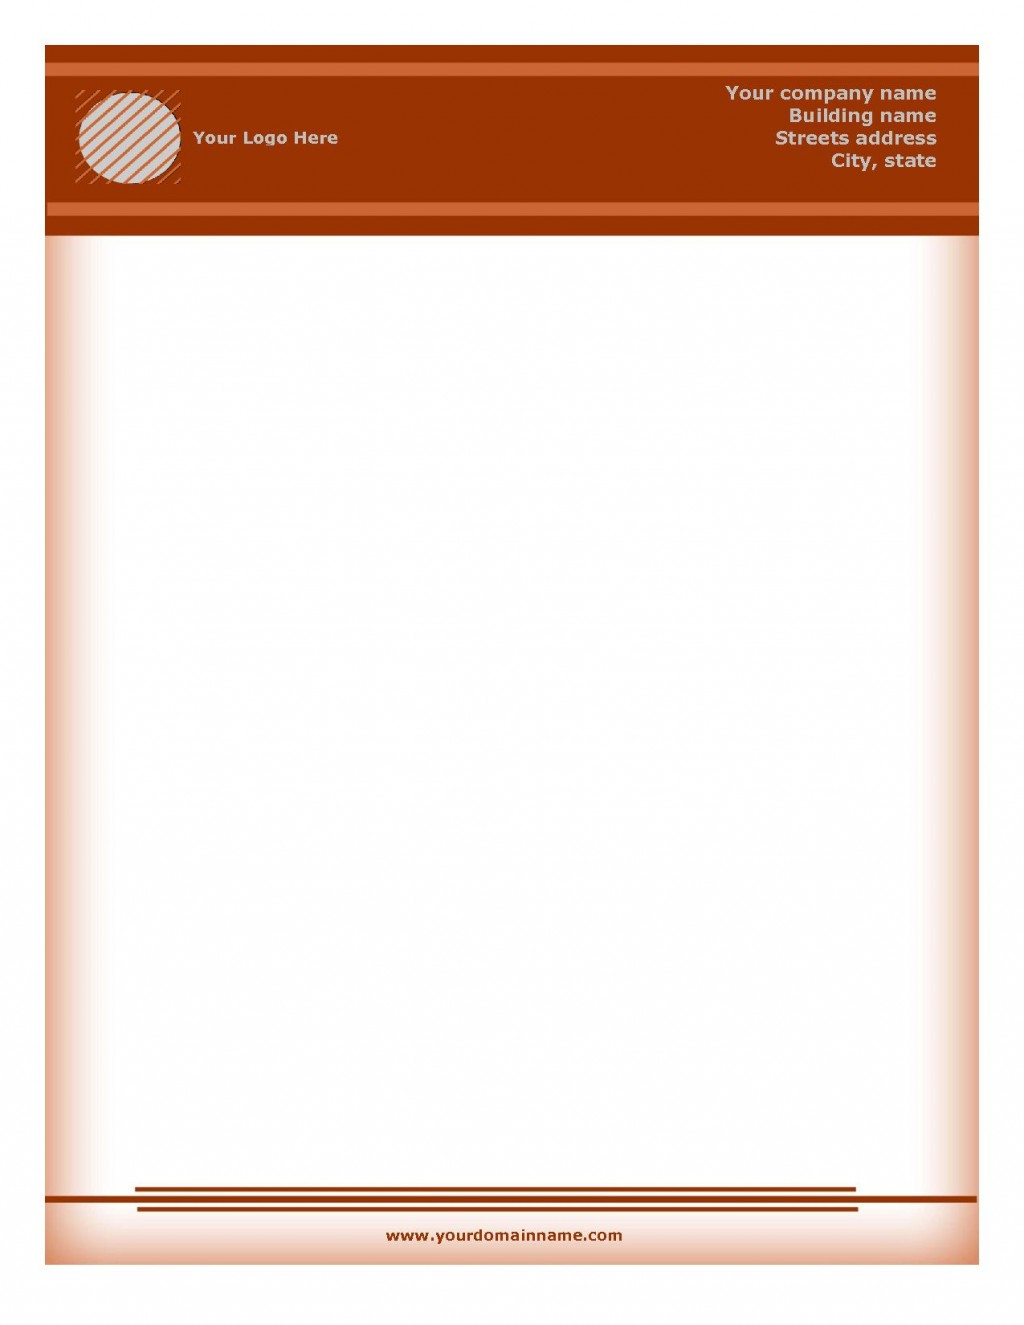 002 Marvelou Free Letterhead Template Download High Definition  Word Psd SampleLarge